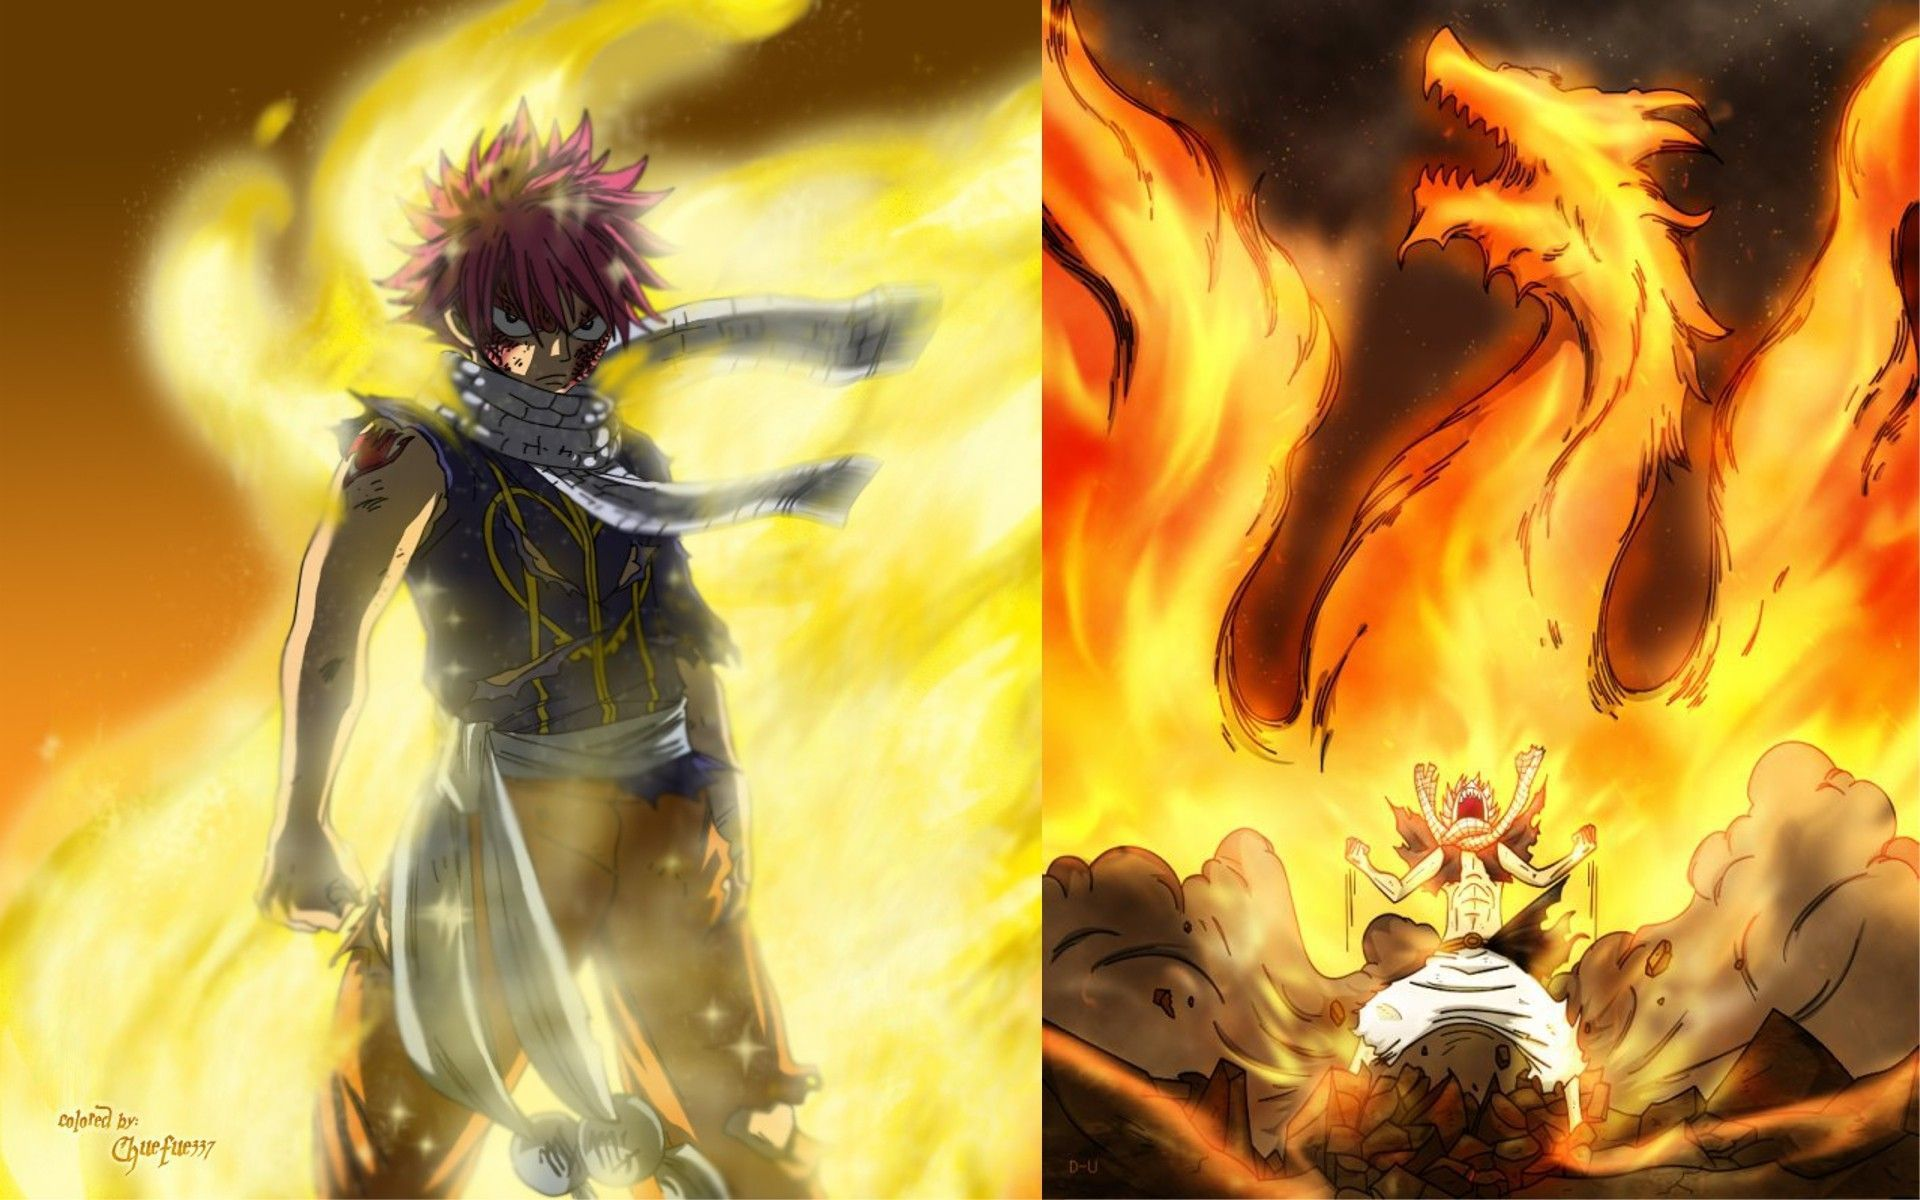 Fairy Tail Wallpapers 1366x768 Group  84   Fairy Tail wallpaper   1920x1200   240041   WallpaperUP